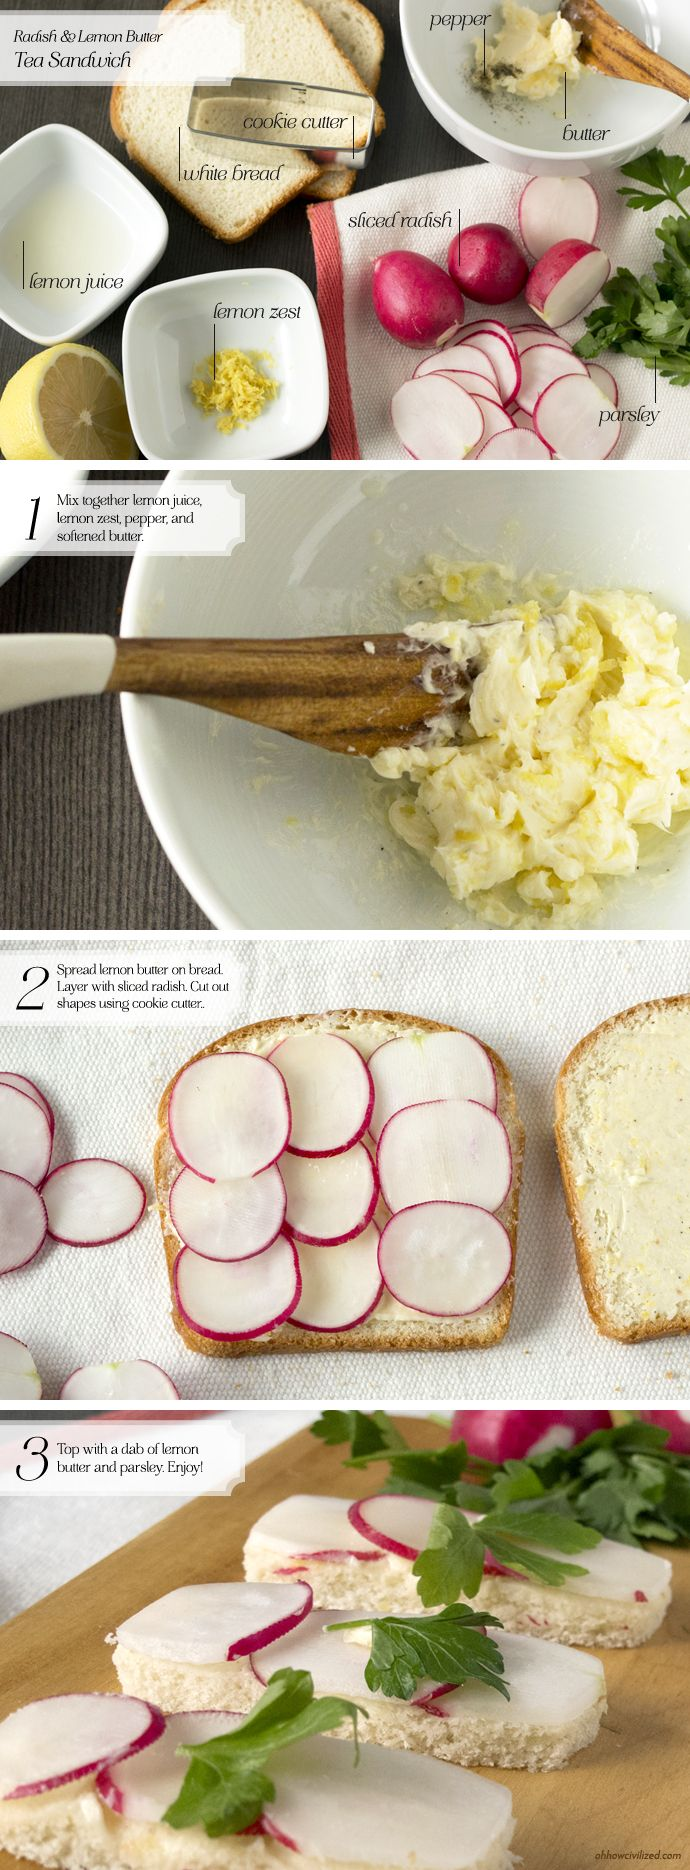 ... on Pinterest | Finger sandwiches, High tea sandwiches and Tea parties